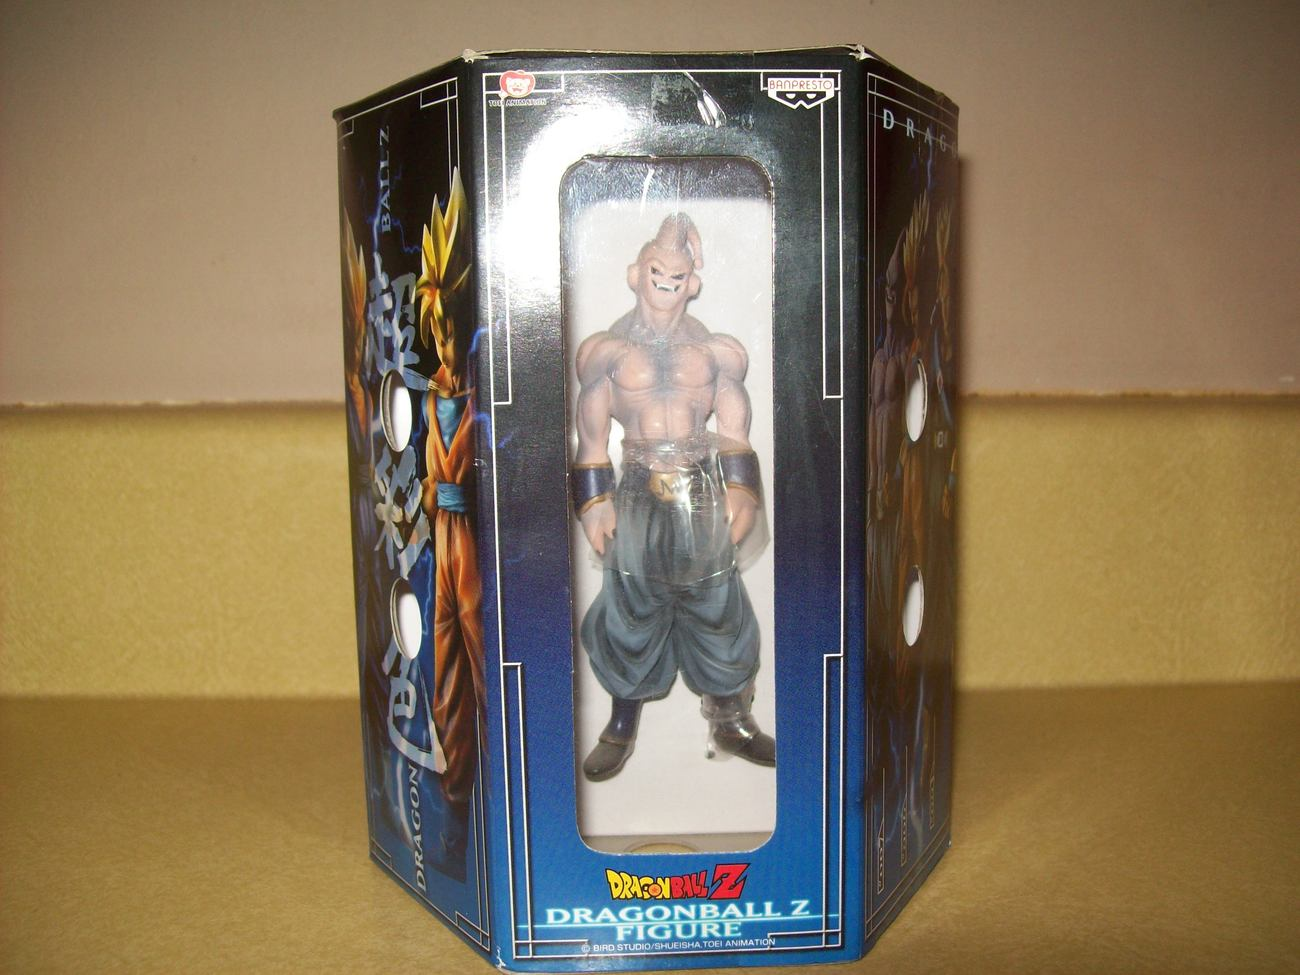 "buu majin kid dragonball z banpresto prize rare nib 5"" toy open to offers"